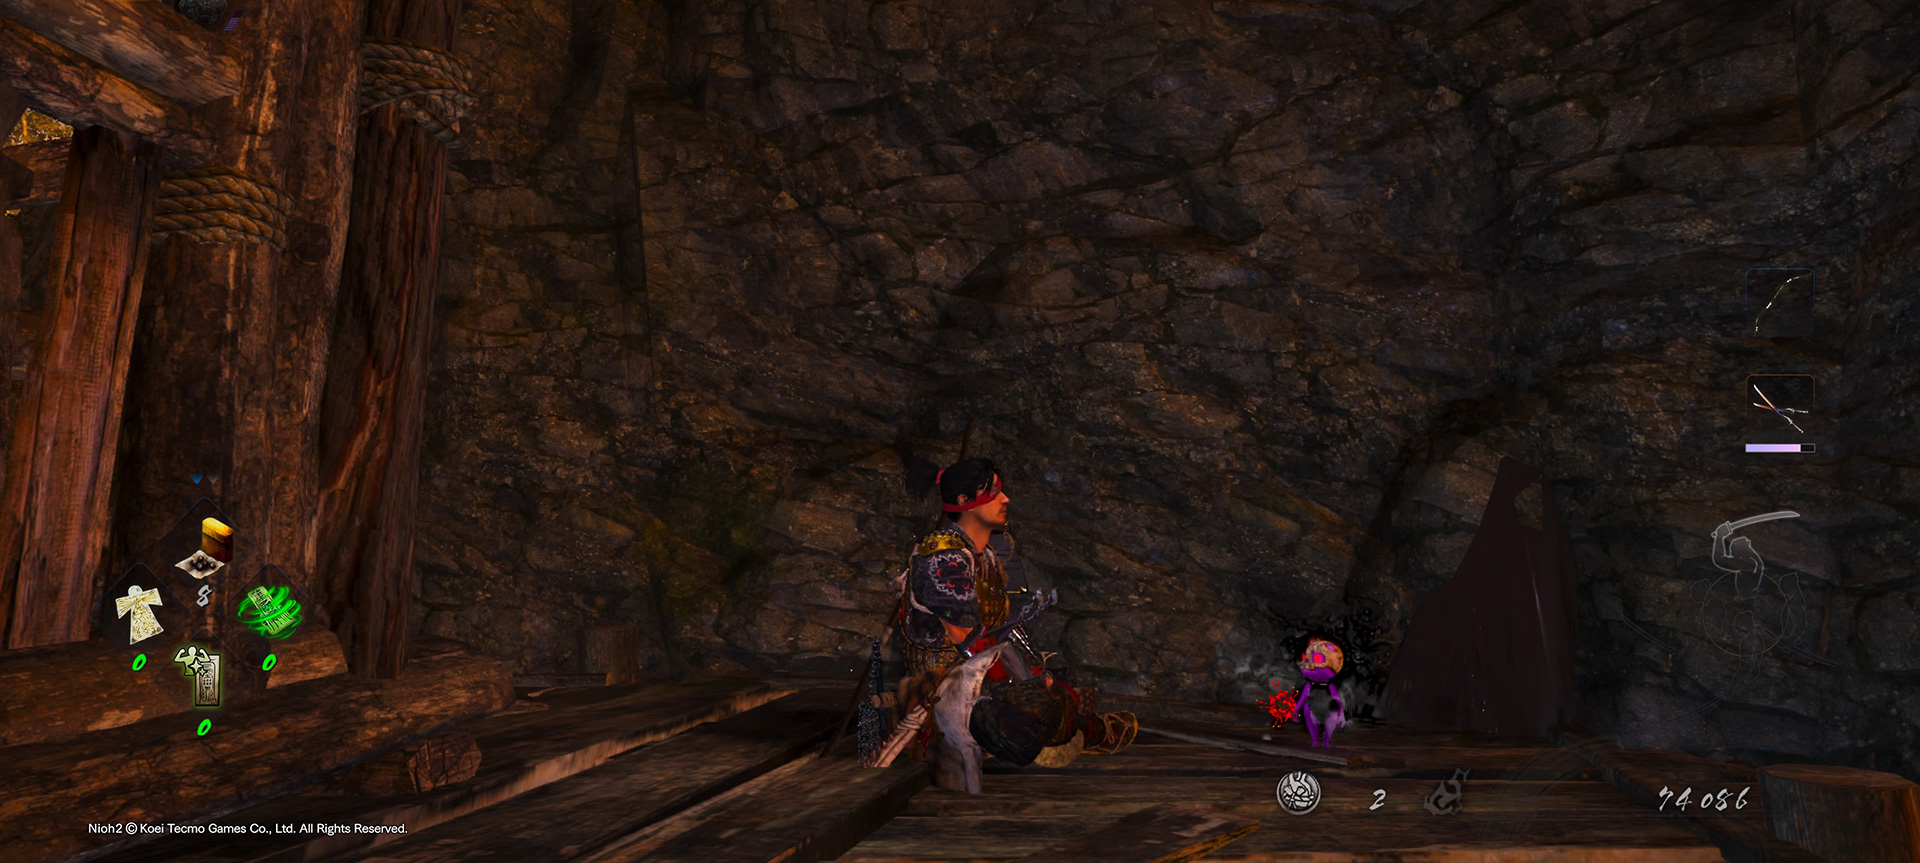 Nioh 2 tip: Give your extra items to the little purple Sudama screenshot